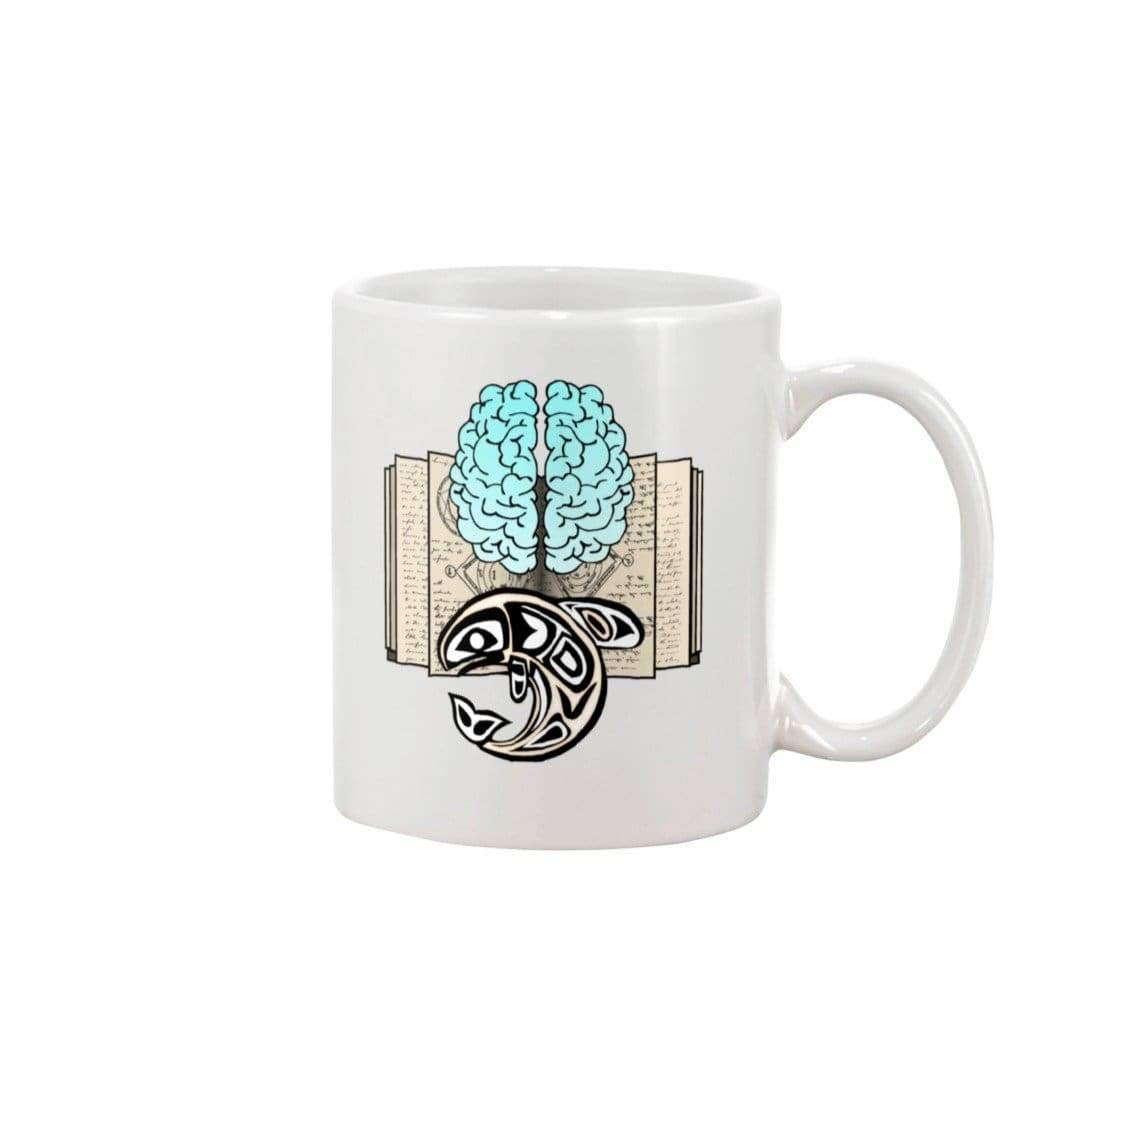 AEDG DUSTRUS 15oz Coffee Mug - White / 15OZ - Mugs